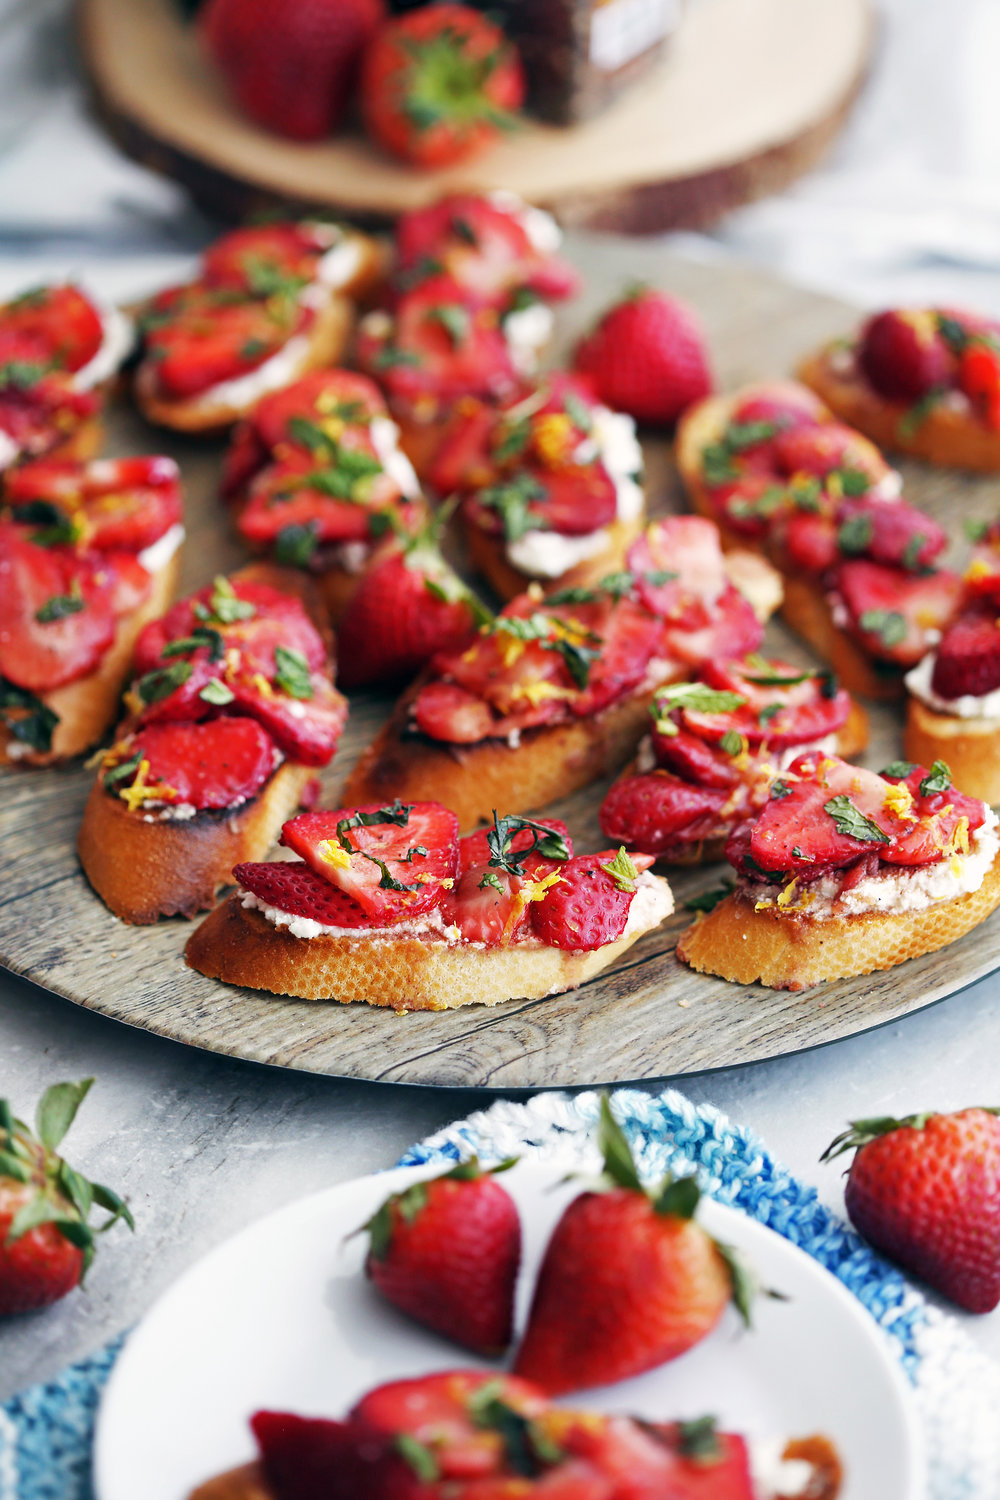 Balsamic Strawberry Ricotta Crostini on a large wooden platter surrounded by fresh strawberries.